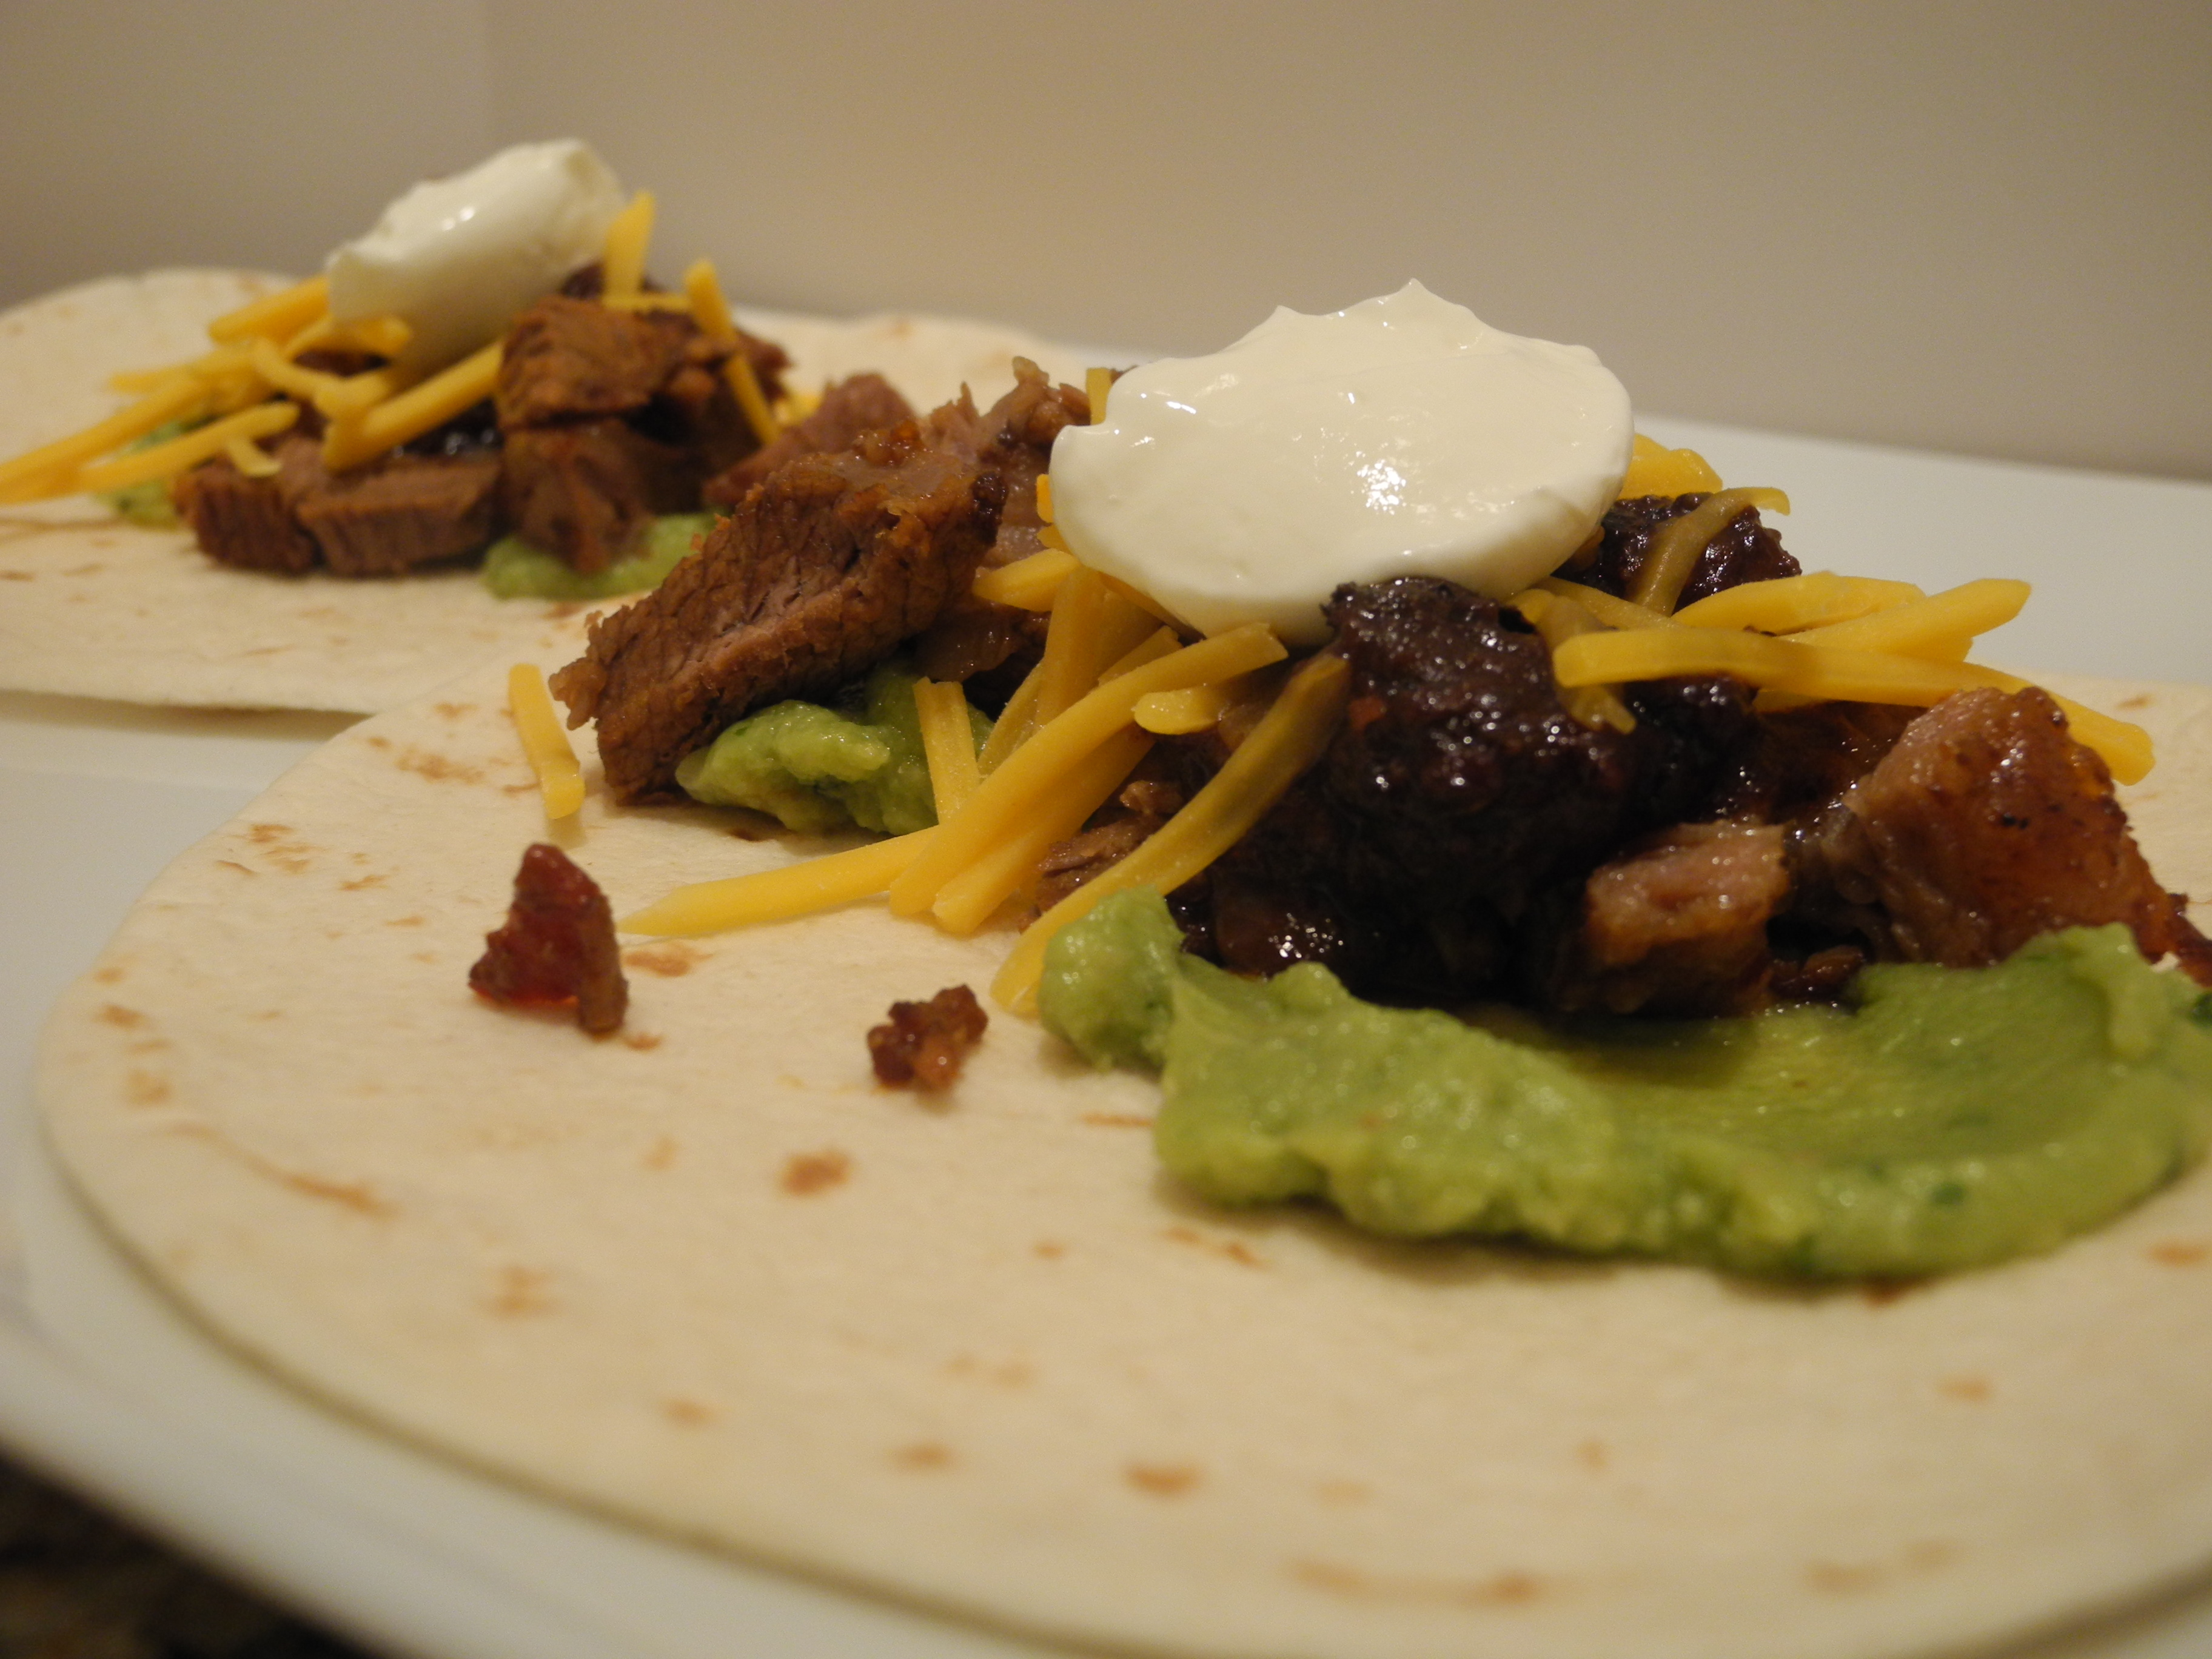 Brisket Tacos with Warm Chipotle Salsa - A Well Fed Life